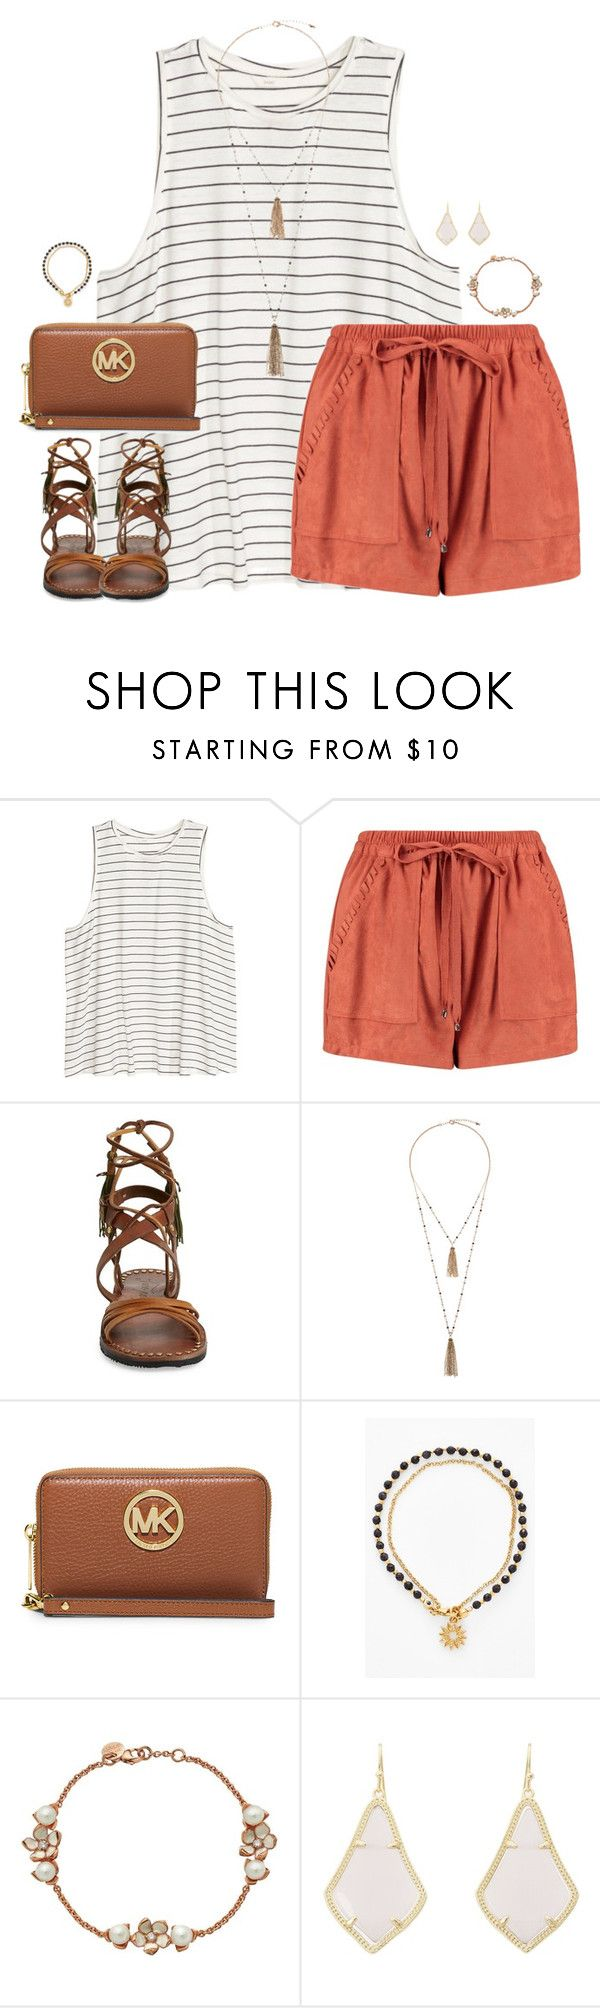 """//"" by kaley-ii ❤ liked on Polyvore featuring Boohoo, Free People, Eloquii, MICHAEL Michael Kors, Astley Clarke, Shaun Leane and Kendra Scott"